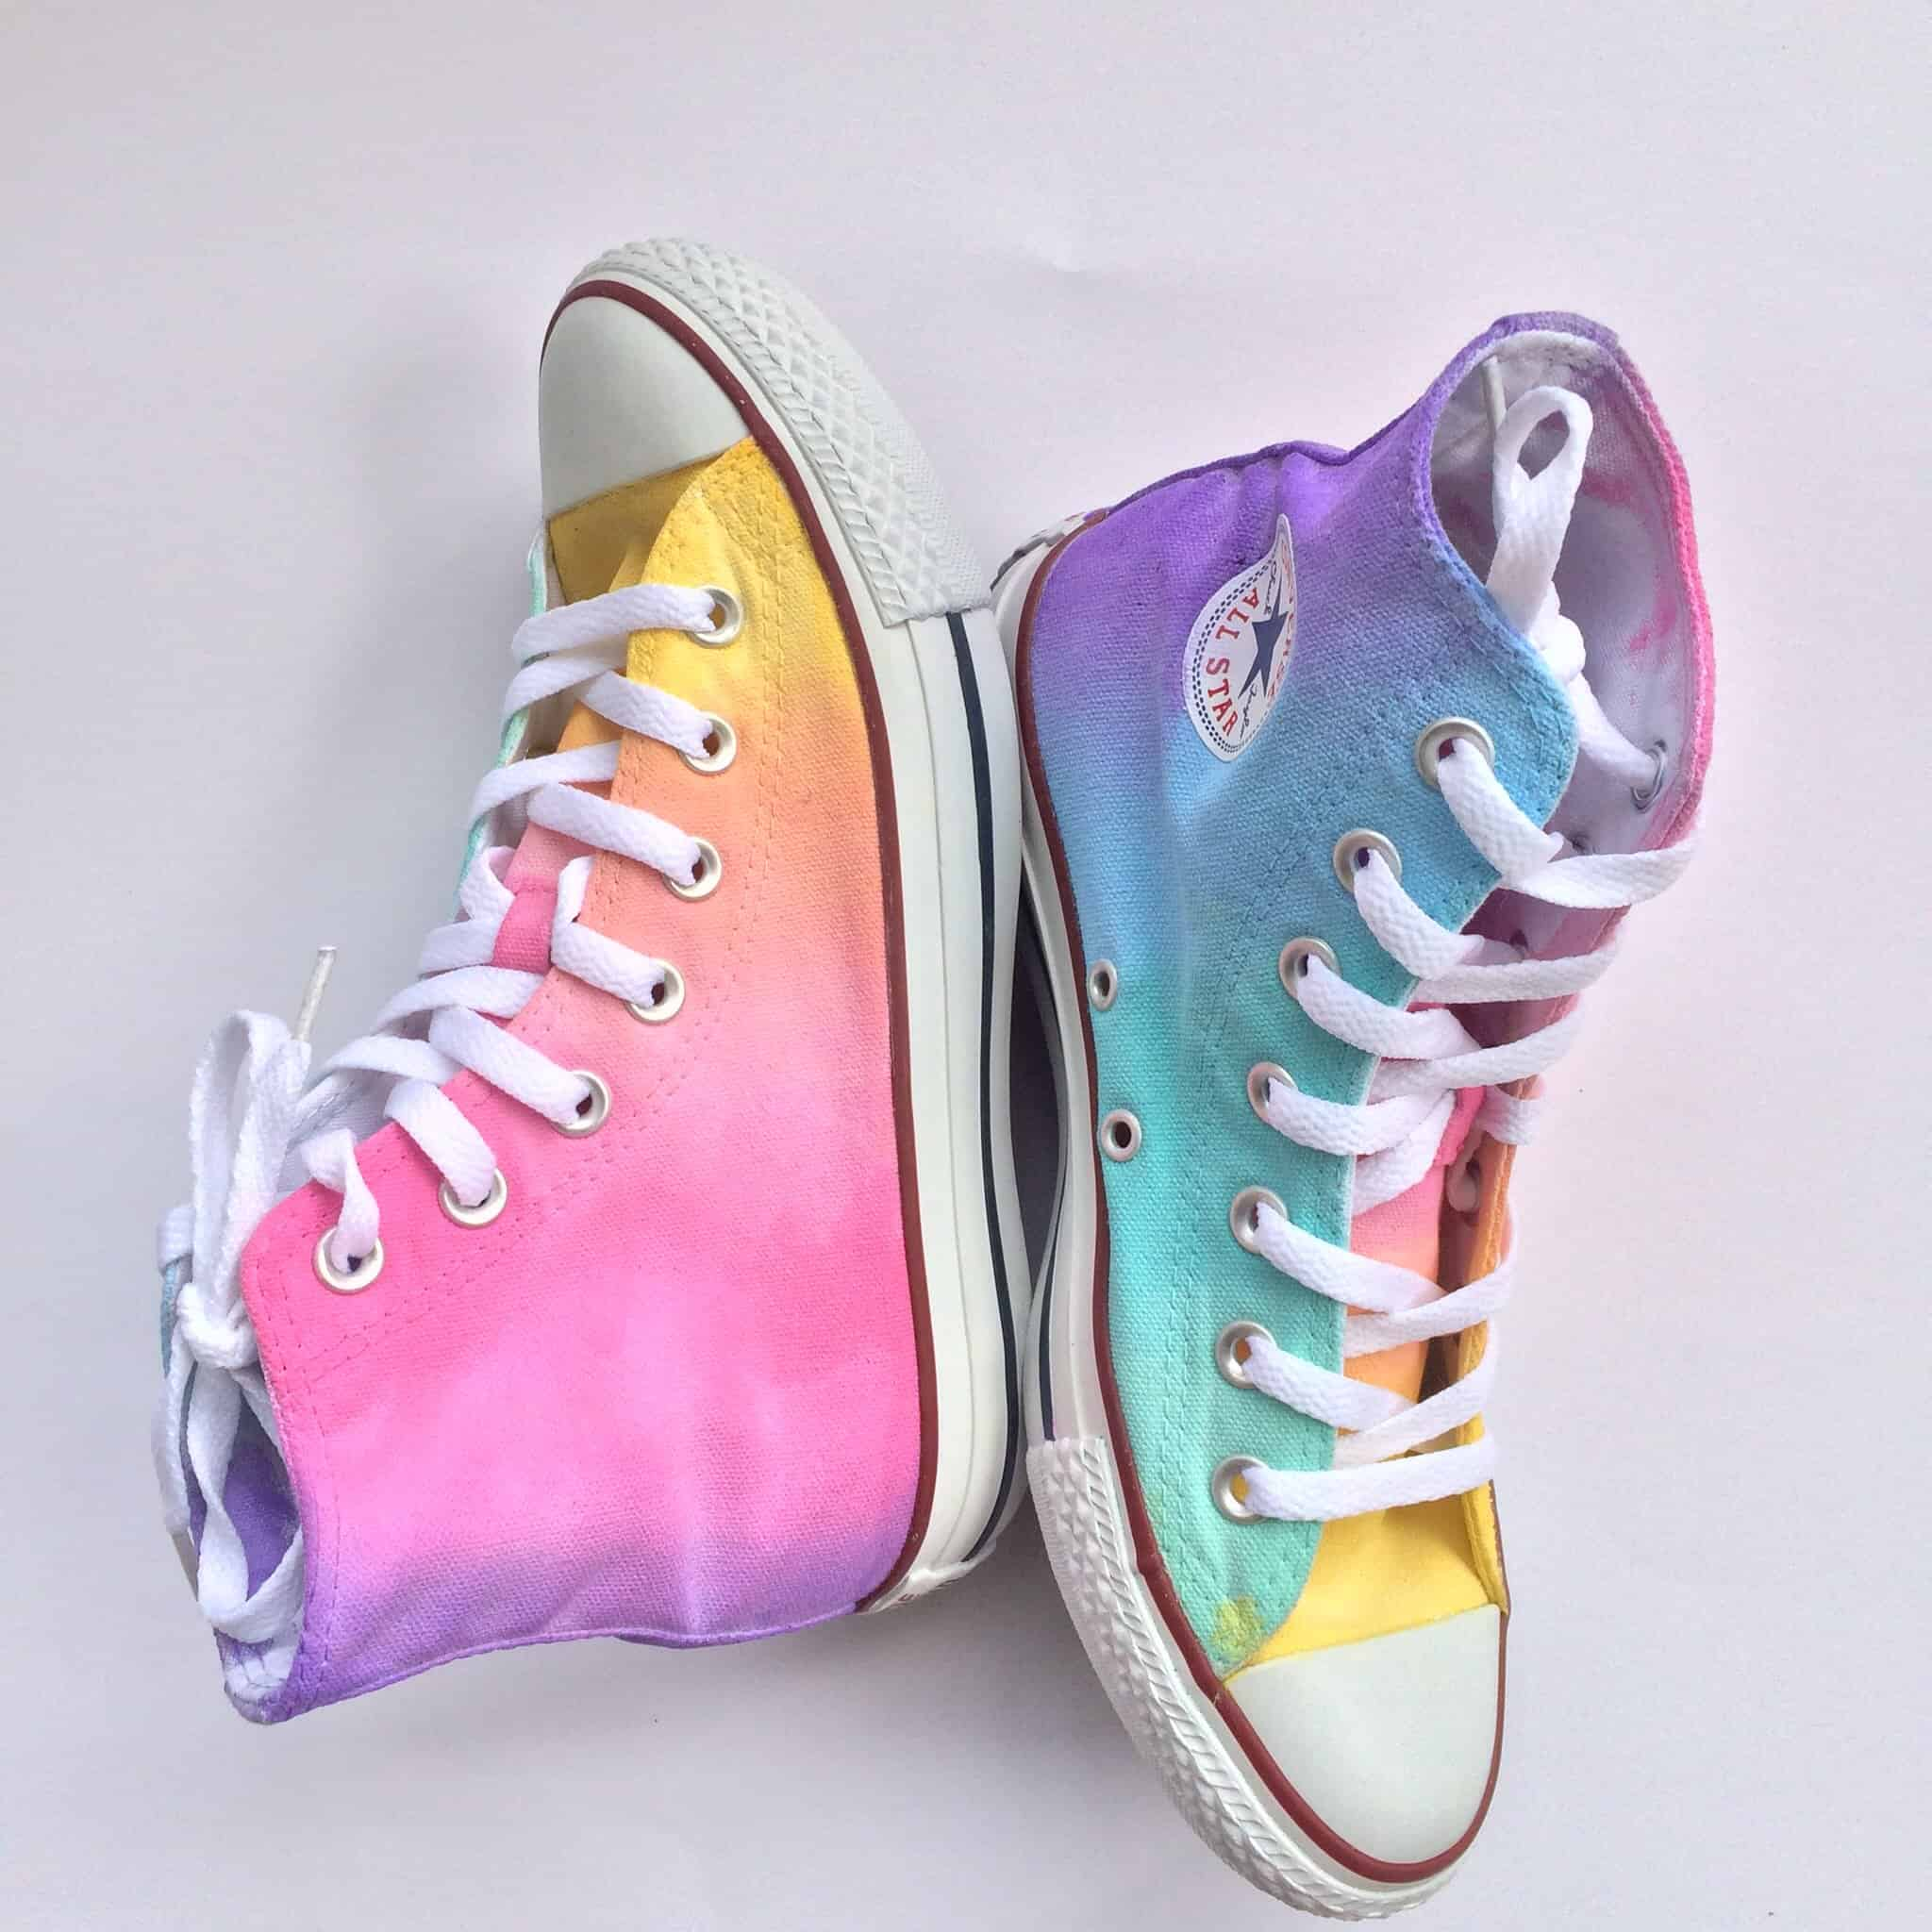 Pastel tie dyed shoes